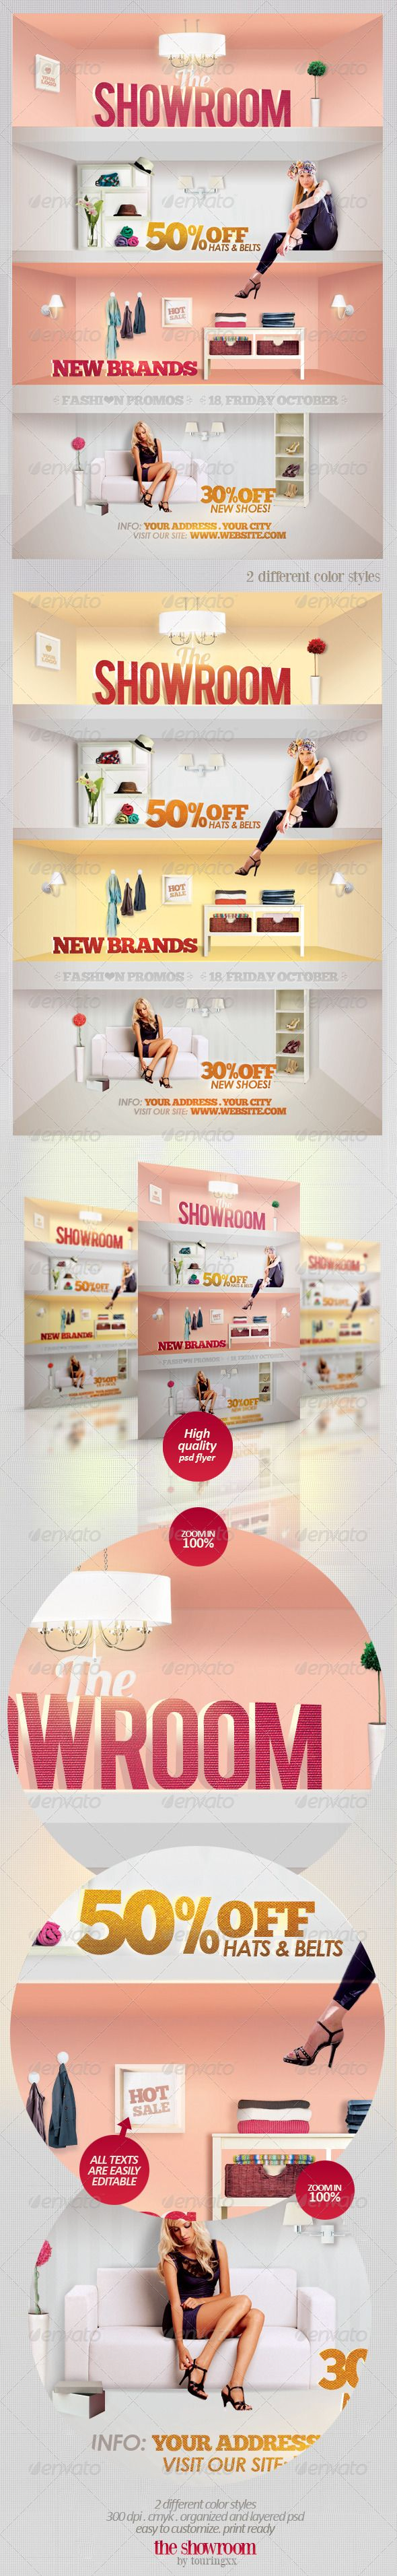 The Showroom Flyer Template / $6. ***This flyer is perfect for the promotion of Shops/Boutiques, Sales/Promotions, Fashion Shows, New Collections or Whatever you Want!.***